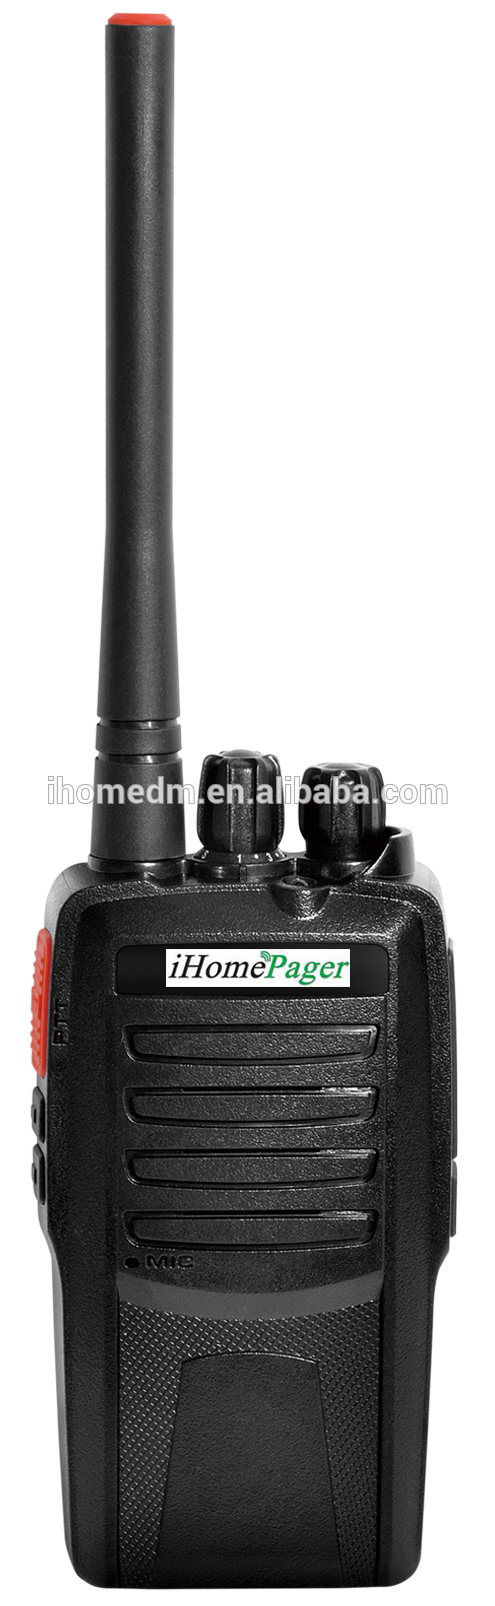 HT9900 high range two-way radio walkie talkie 8w